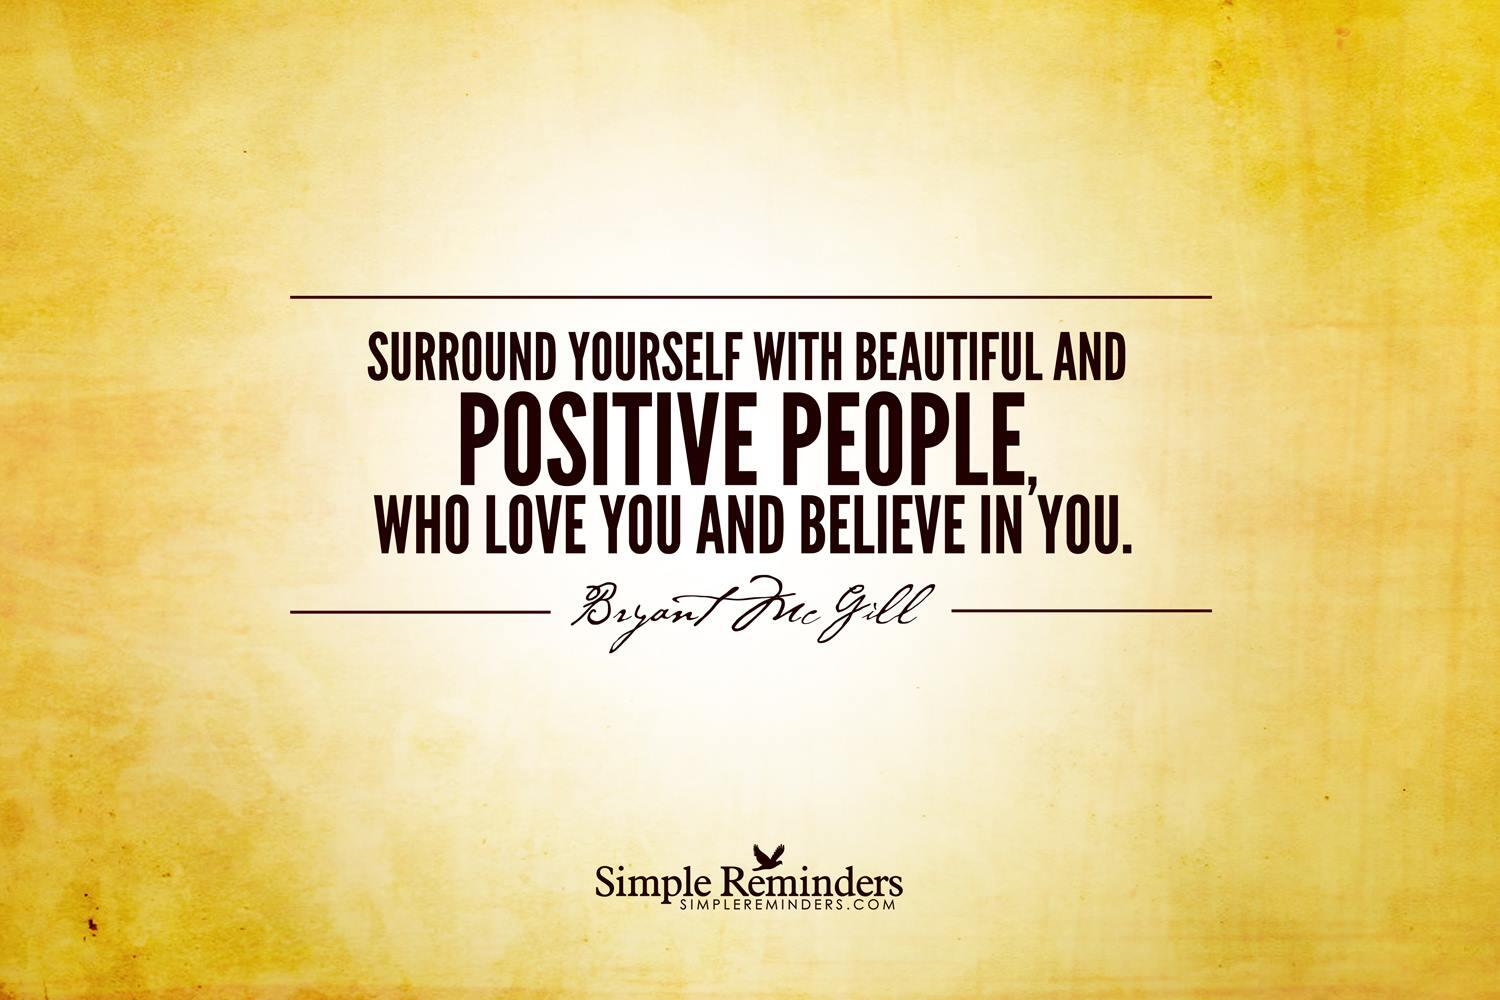 RT @hopemag: Surround yourself with beautiful and positive people, who love you and believe in you. ~ Bryant McGill http://t.co/FxmdOD1DHN